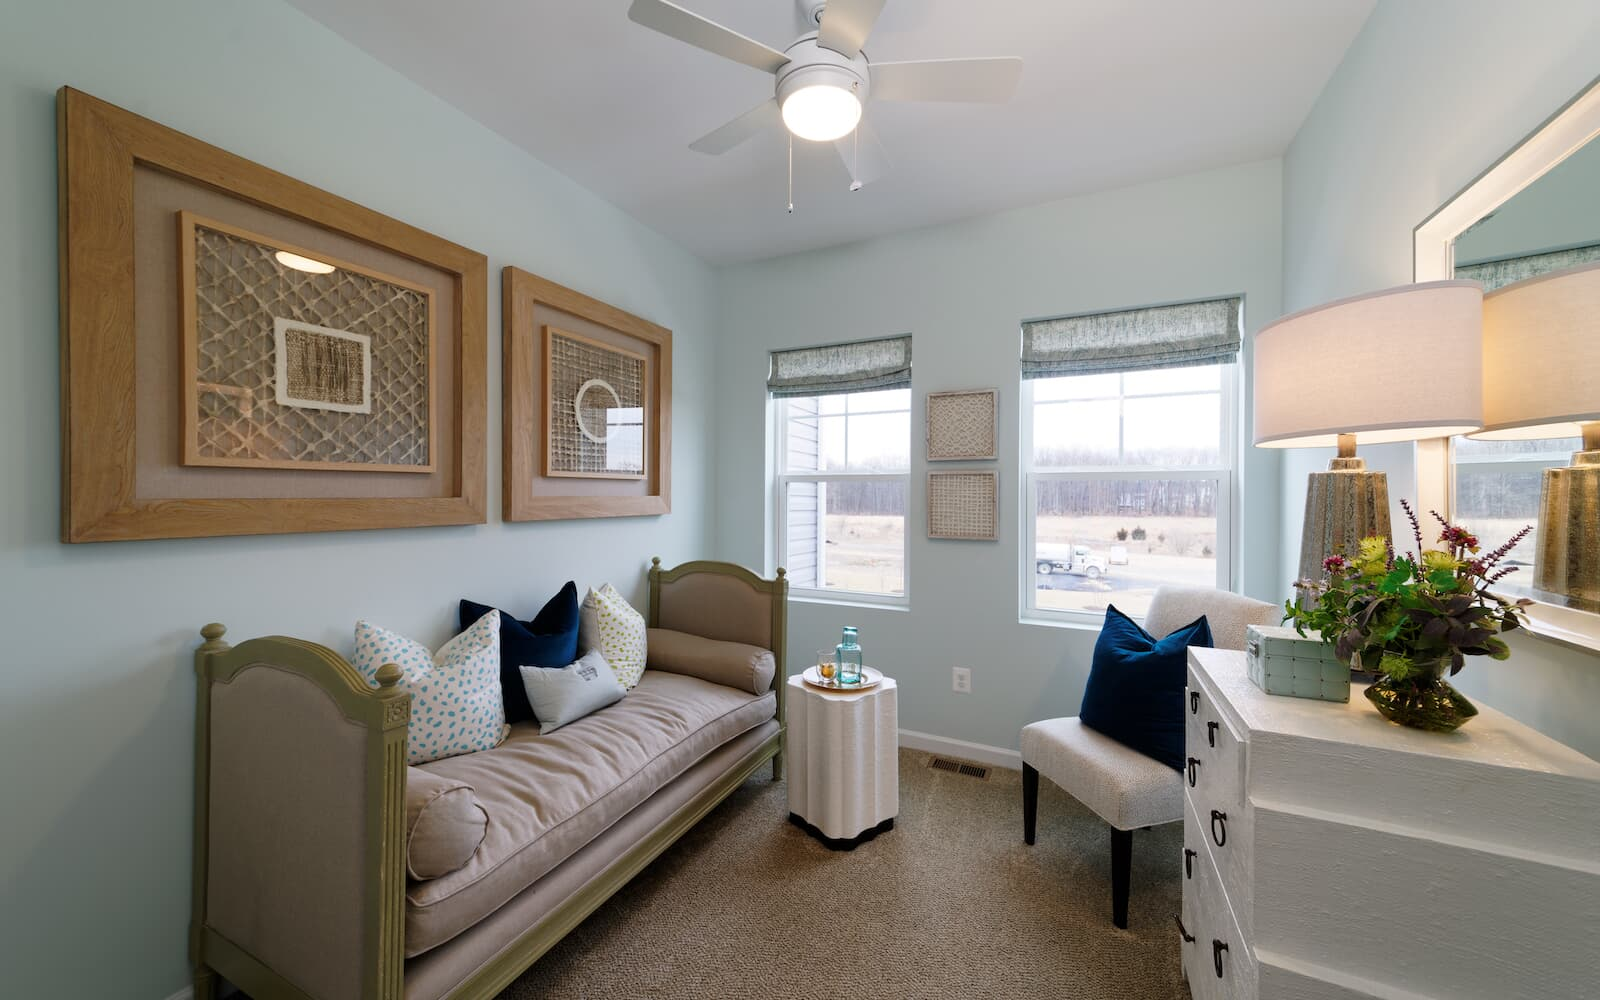 Skyline-bedroom2-townhomes-winchester-va-snowden-bridge-brookfield-residential